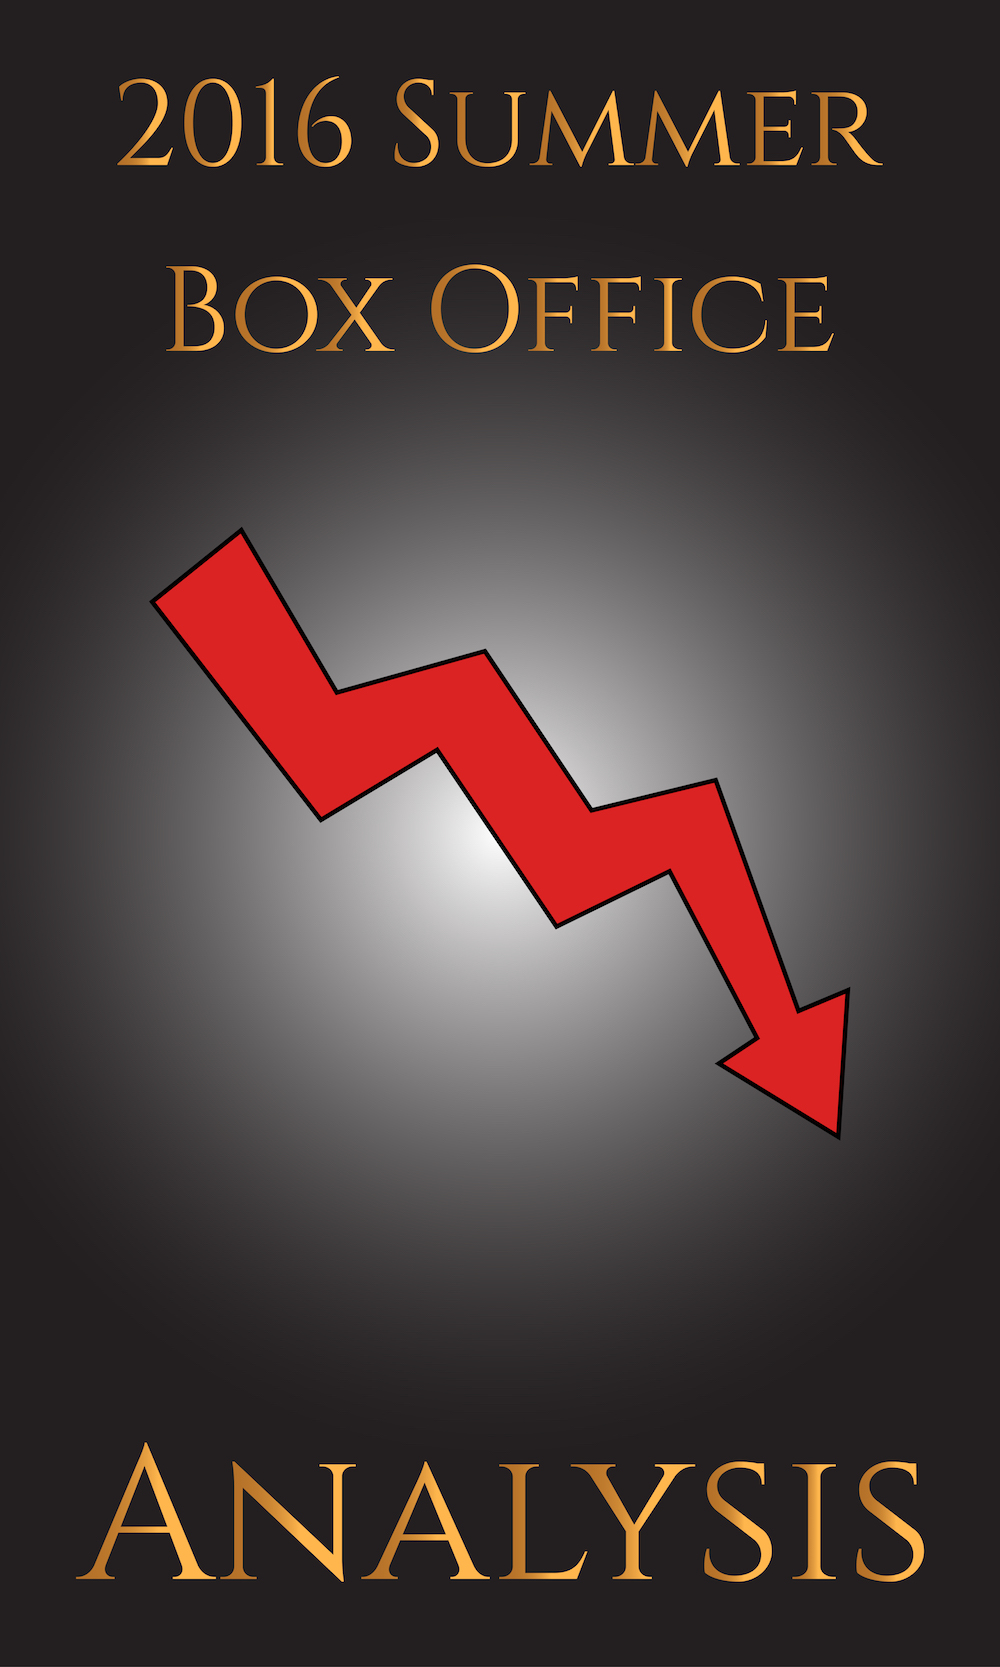 2016 Summer Box Office Analysis